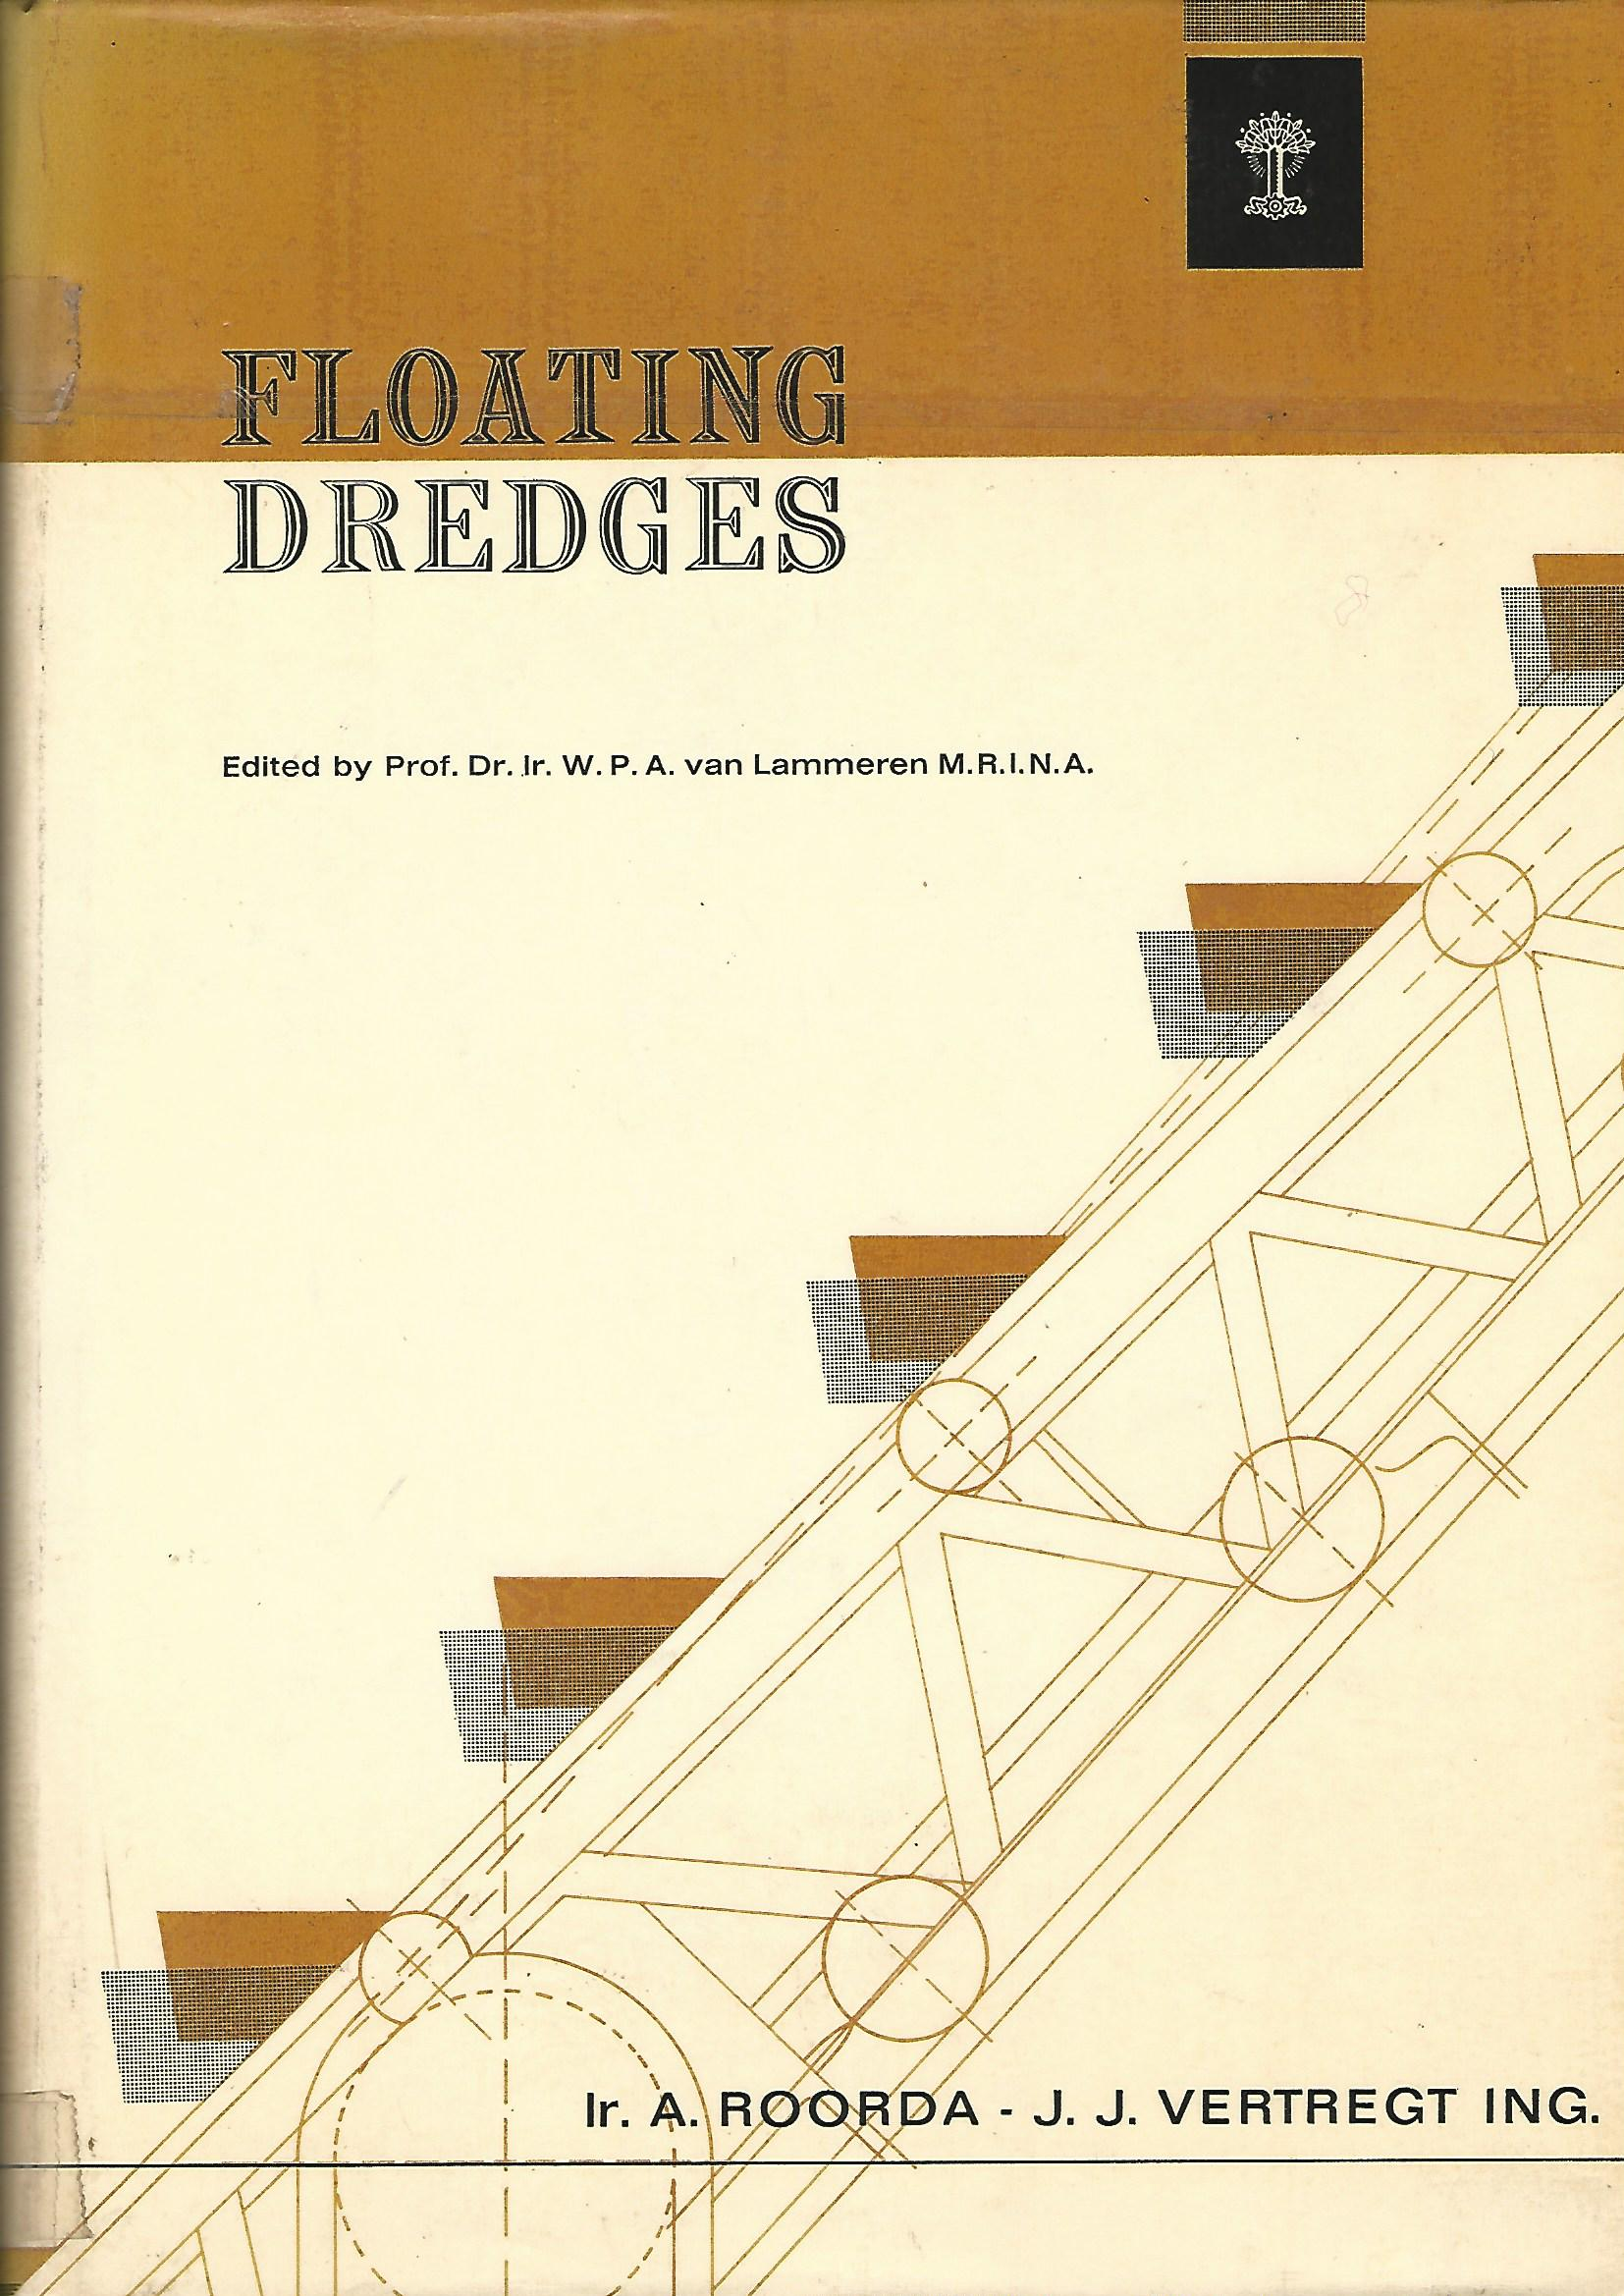 Image for Ships and Marine Engines Vol. VI: Floating Dredges; A Treatise on the construction and design of floating dredges, engine power, internal arrangements, pumping arrangements, etc., with the exception of dredging plants for industrial purposes.